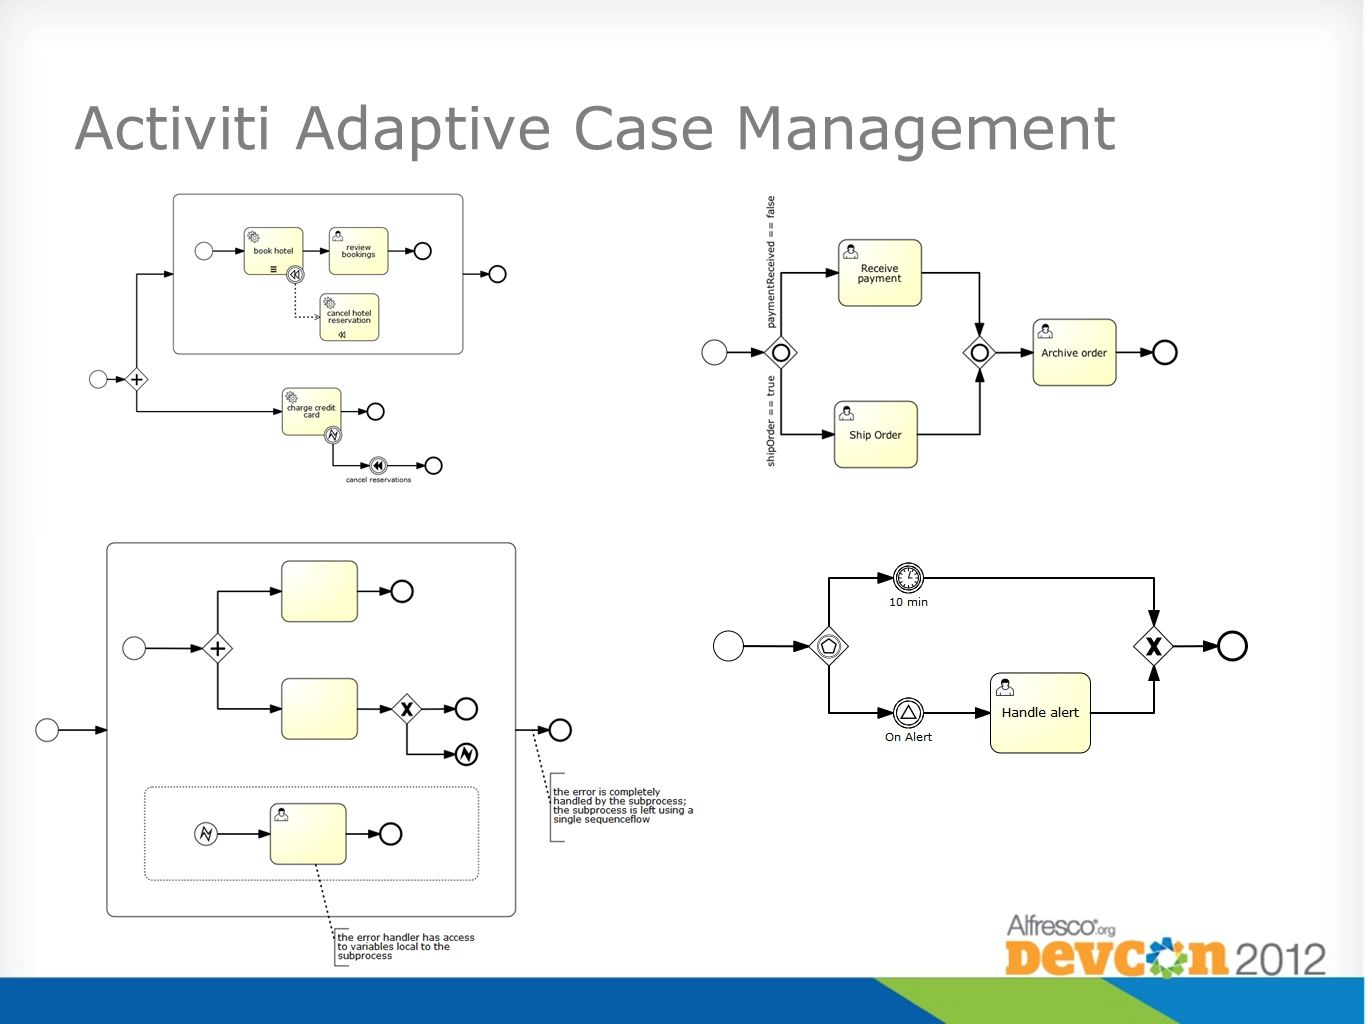 Activiti Adaptive Case Management